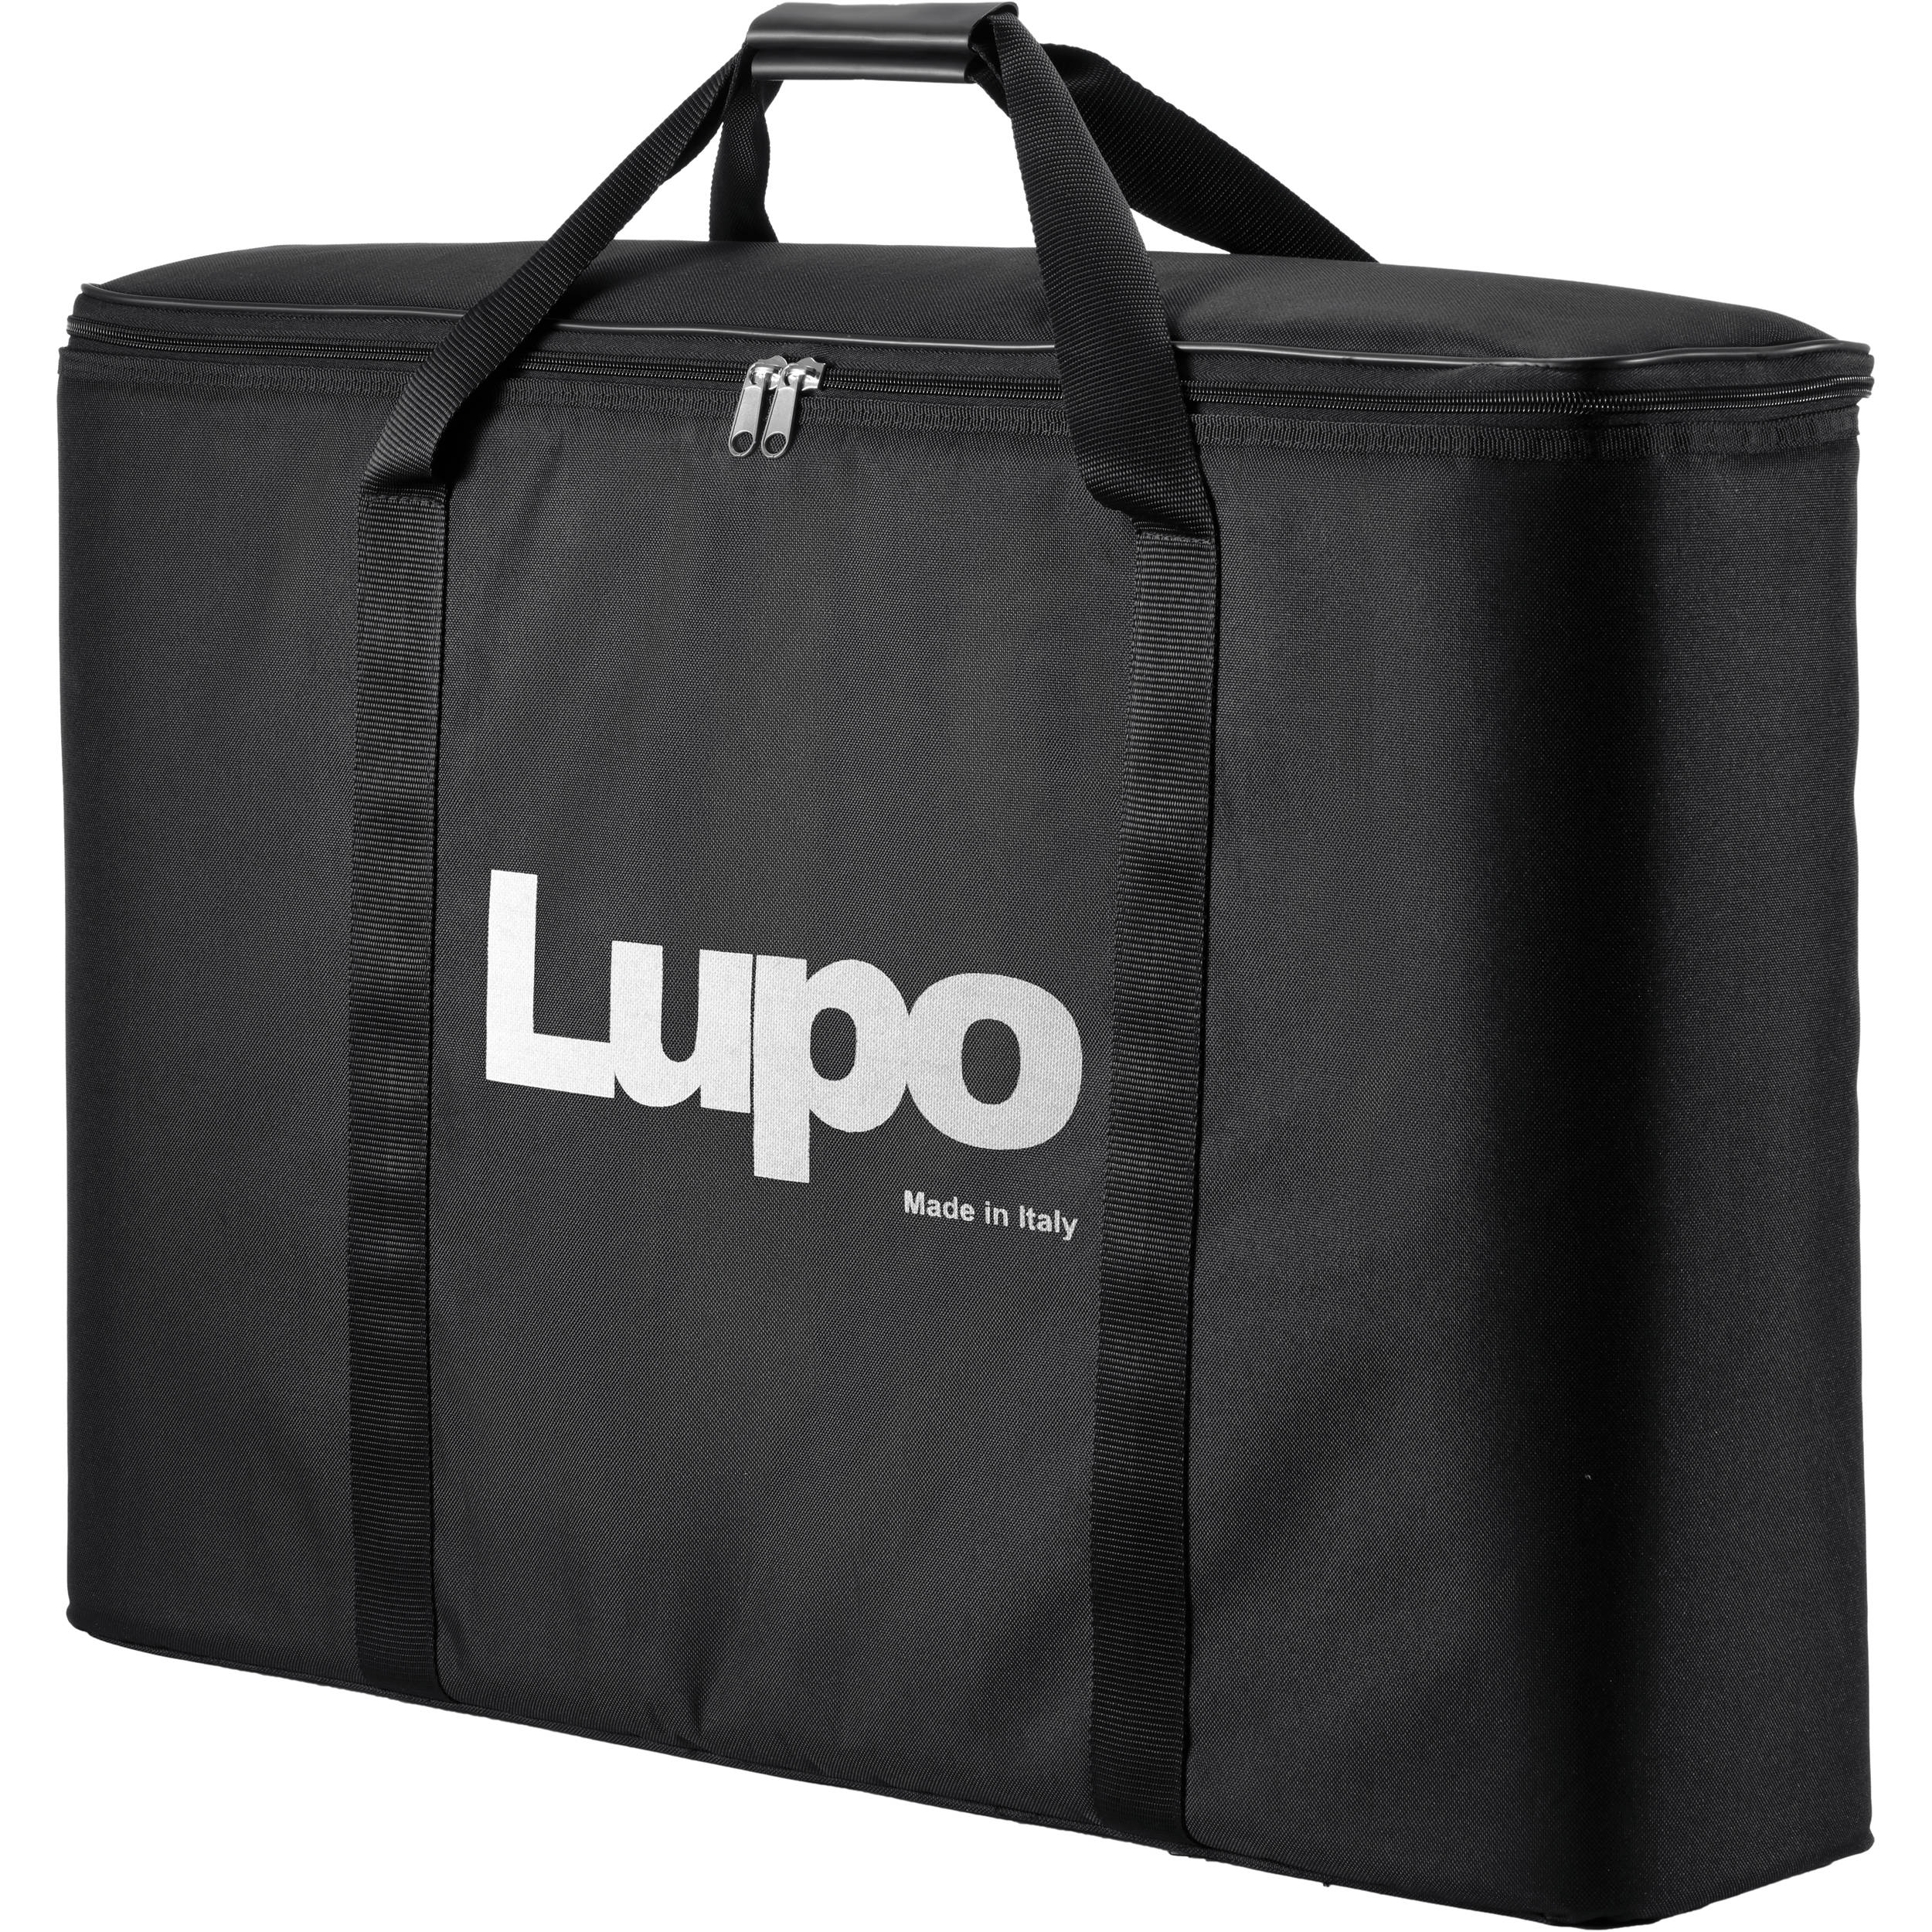 Lupo Padded Bag For Superpanel 60 And